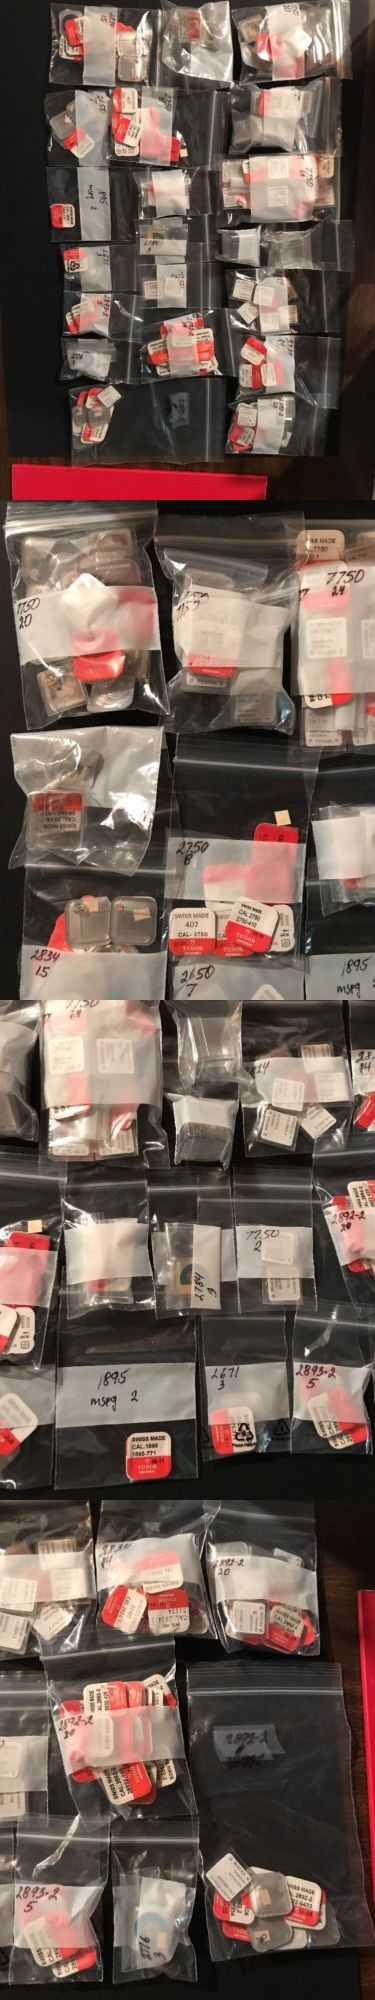 Other Watch Parts 10324: Genuine Rolex Tudor Watch Parts. Assorted. New. With Catalog. Over 180 Pieces. -> BUY IT NOW ONLY: $1720 on eBay!